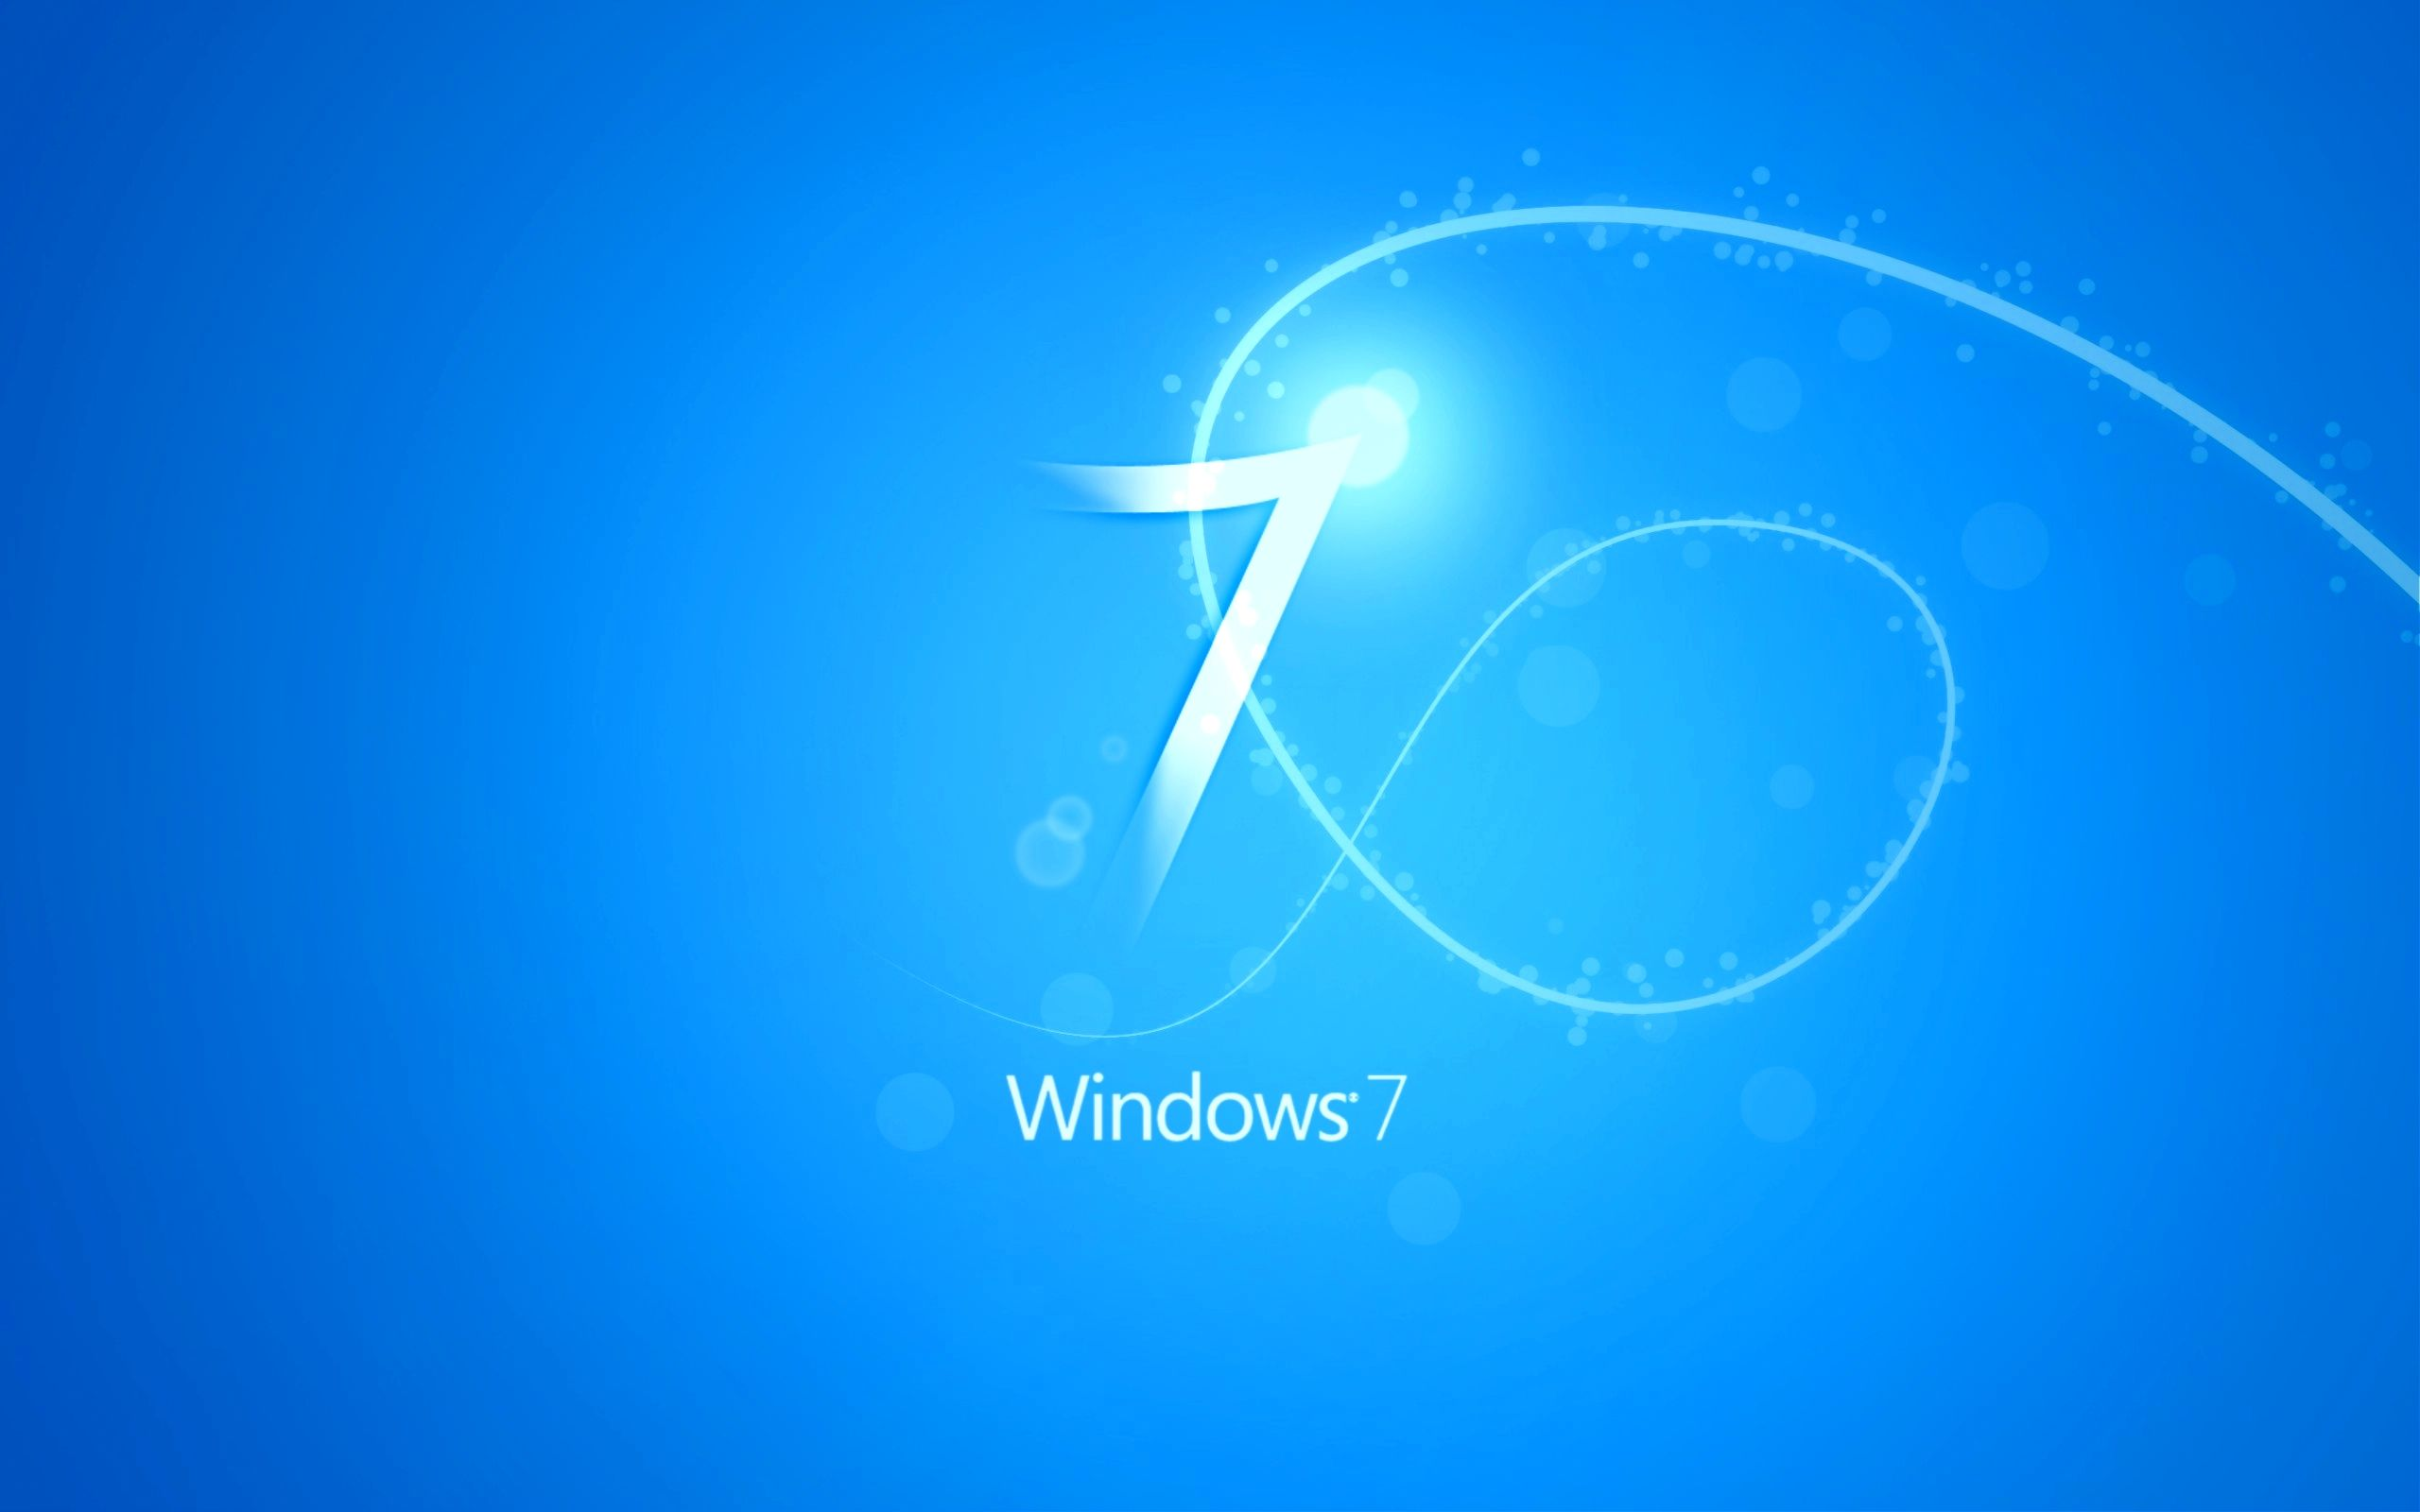 Windows 7 Blue Wallpaper For Your Deskop Projects To Try